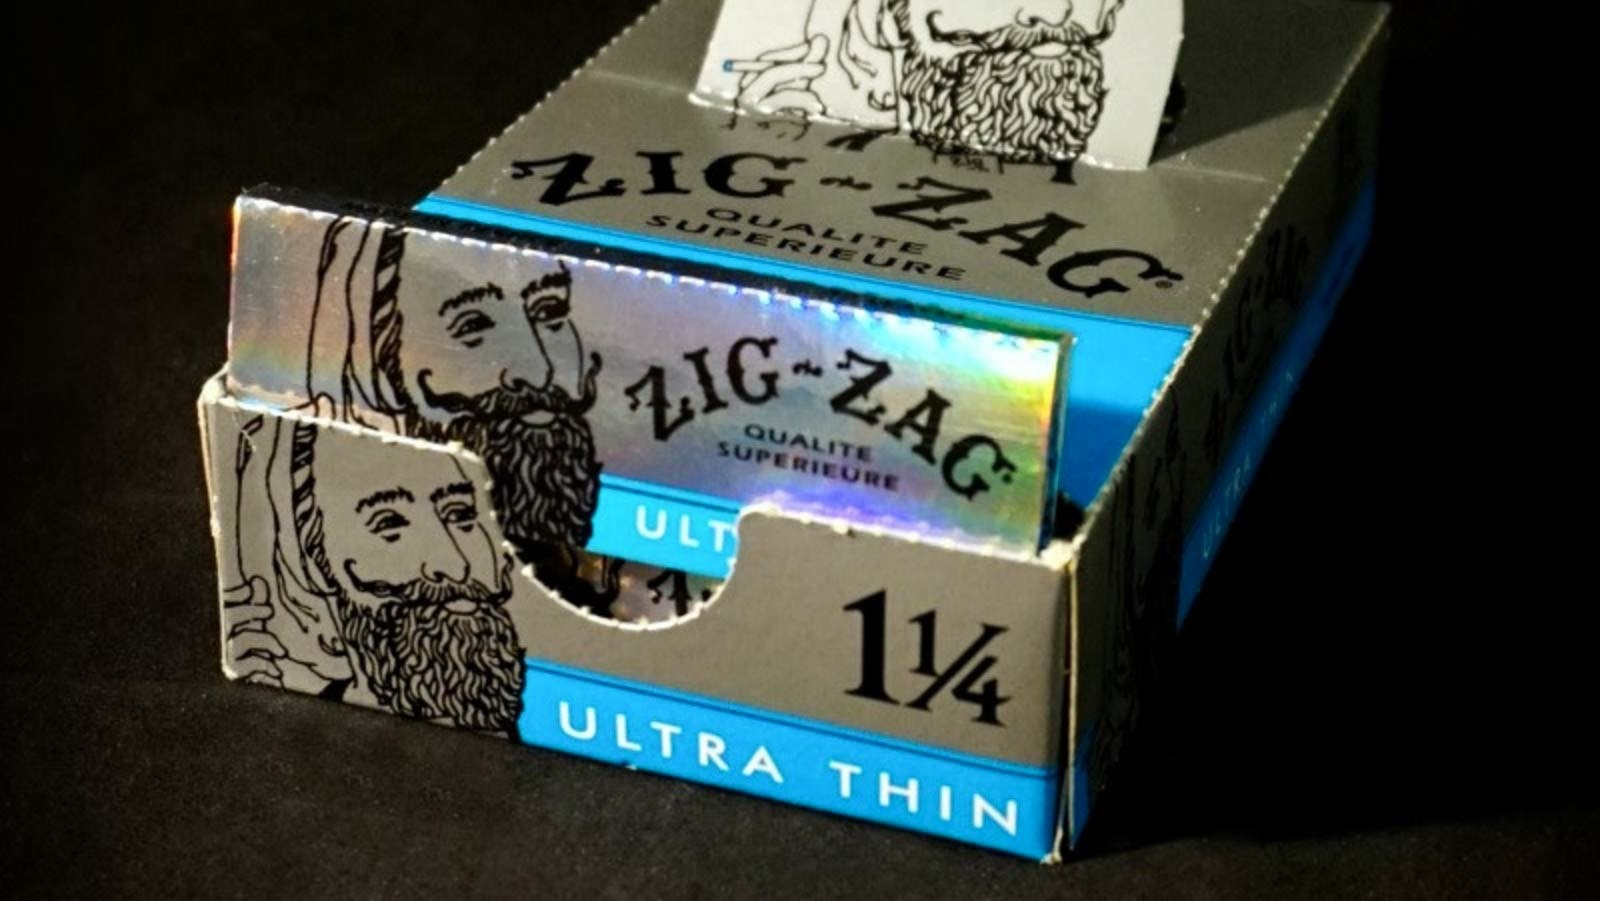 Zig Zag Ultra Thin Papers 125